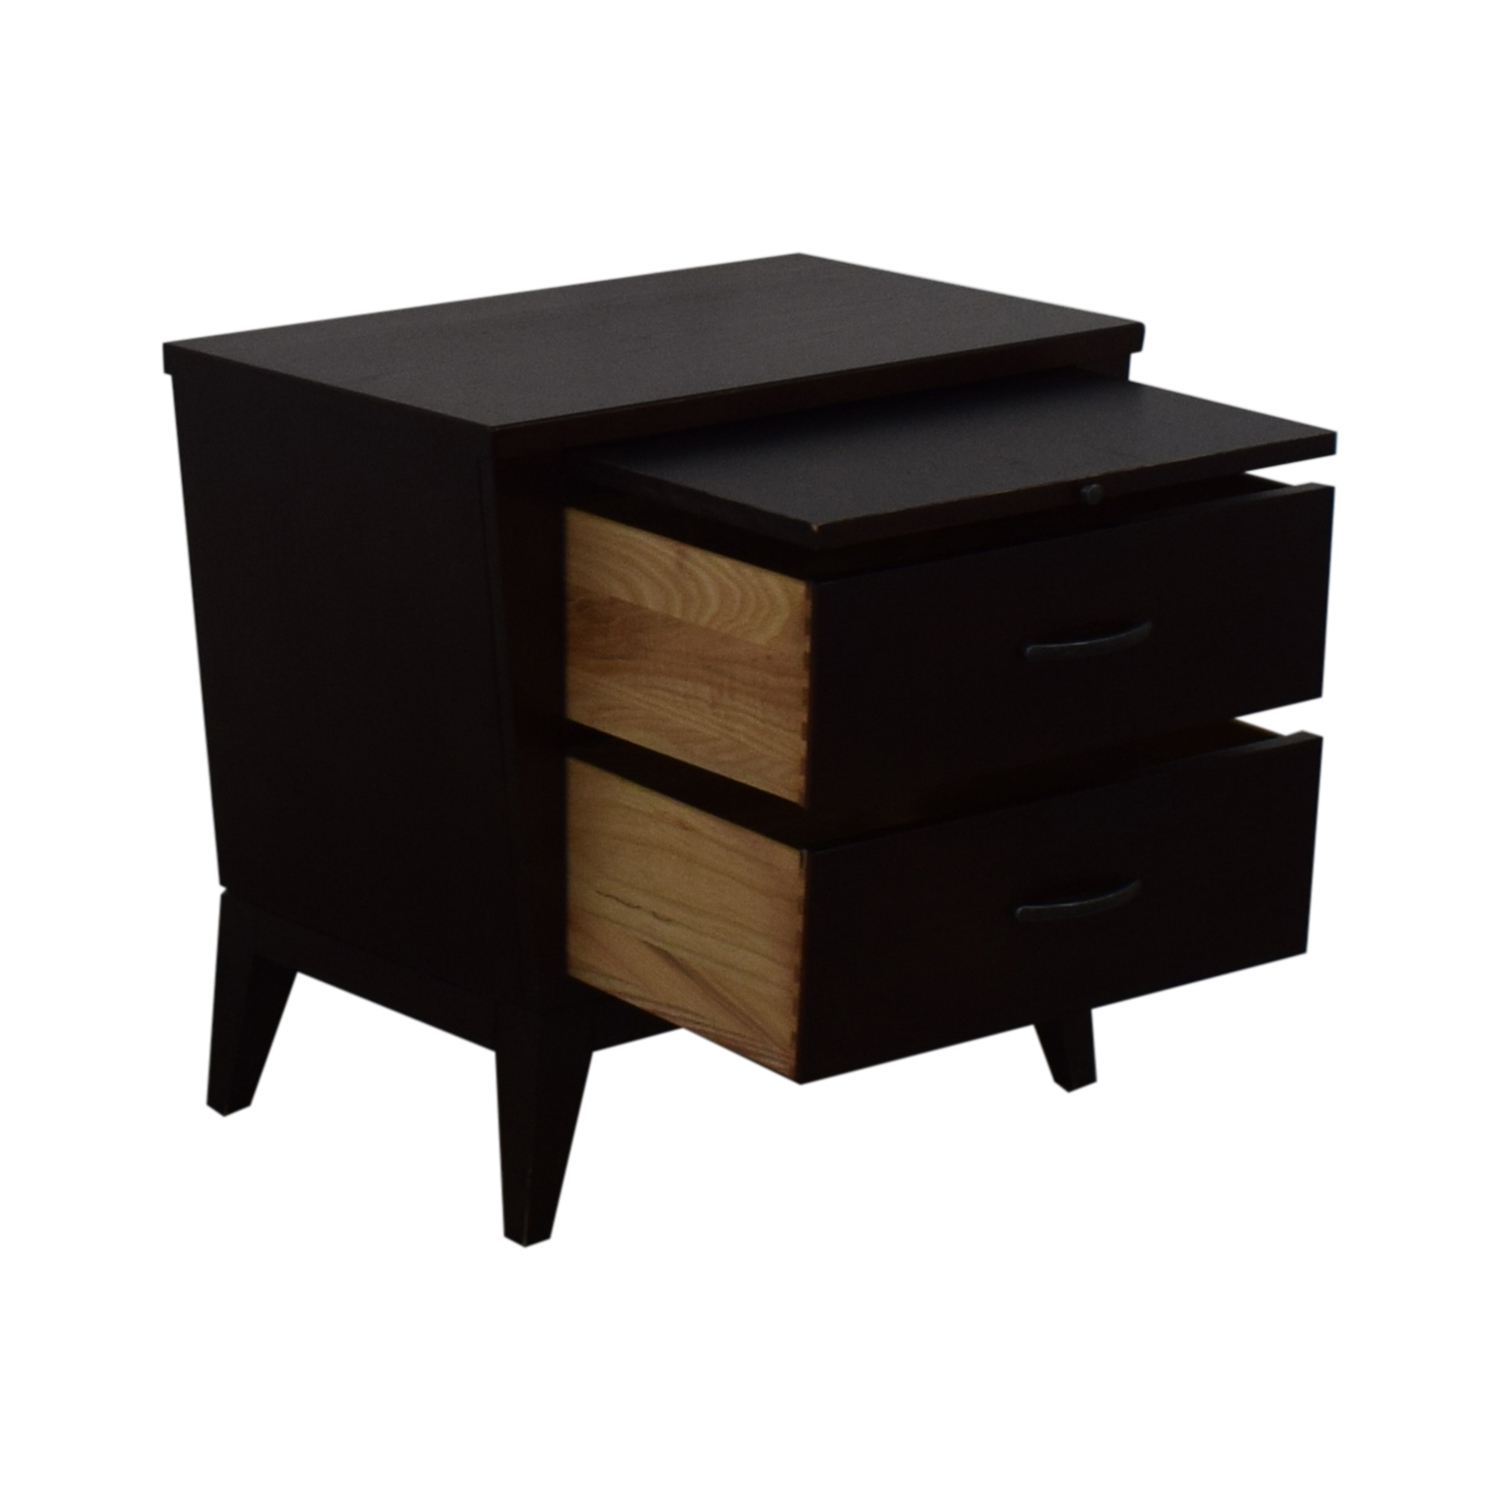 shop Ethan Allen Ethan Allen Nightstand with Drawers online